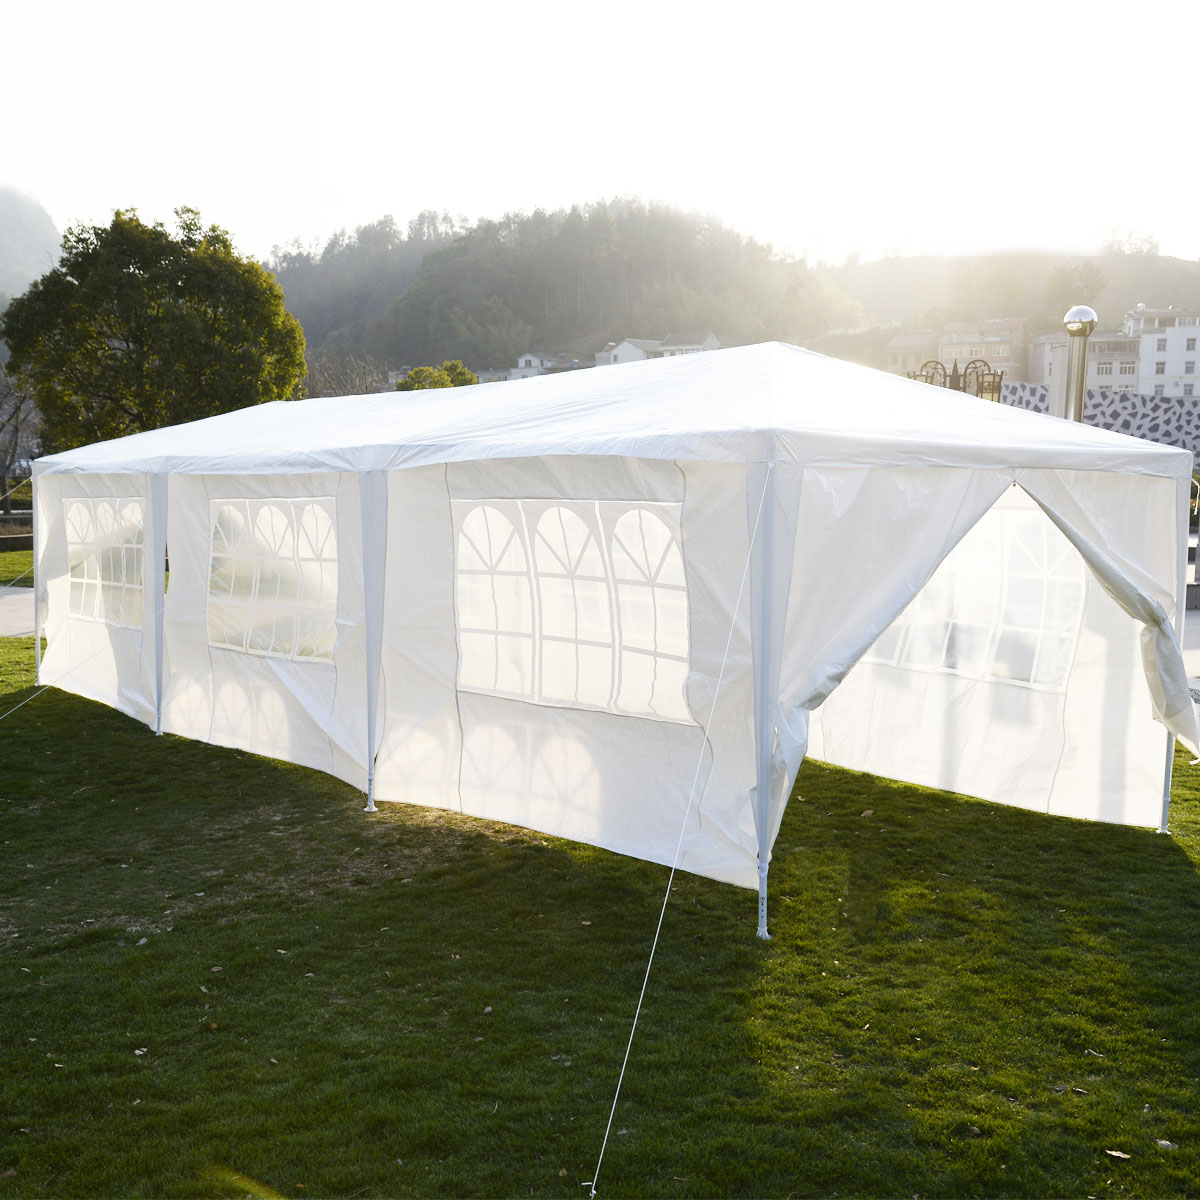 10 x 30 white party tent gazebo canopy. Black Bedroom Furniture Sets. Home Design Ideas